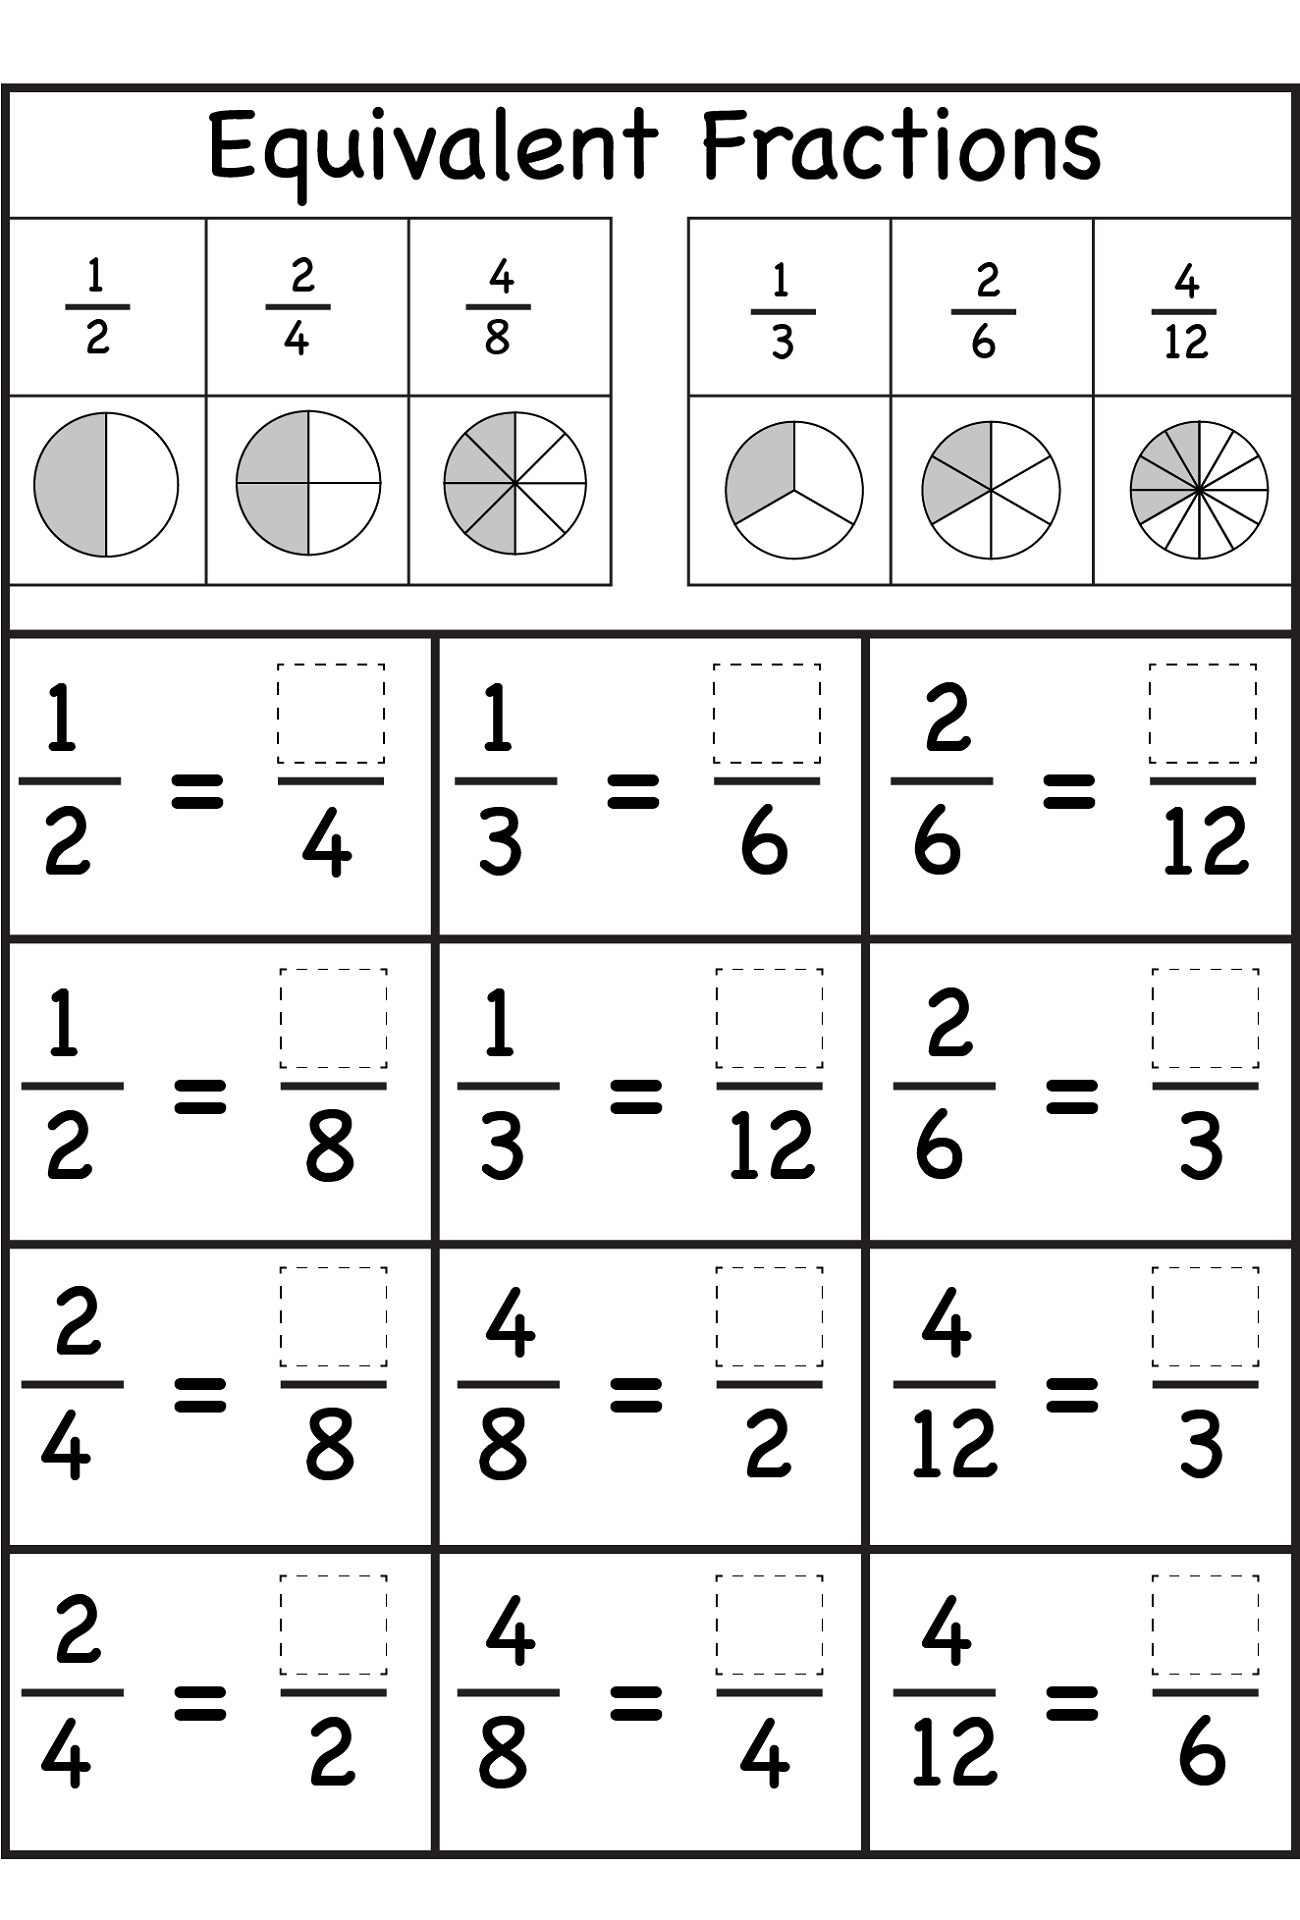 Easy to Hard Fraction Worksheets for Kids | Learning Printable